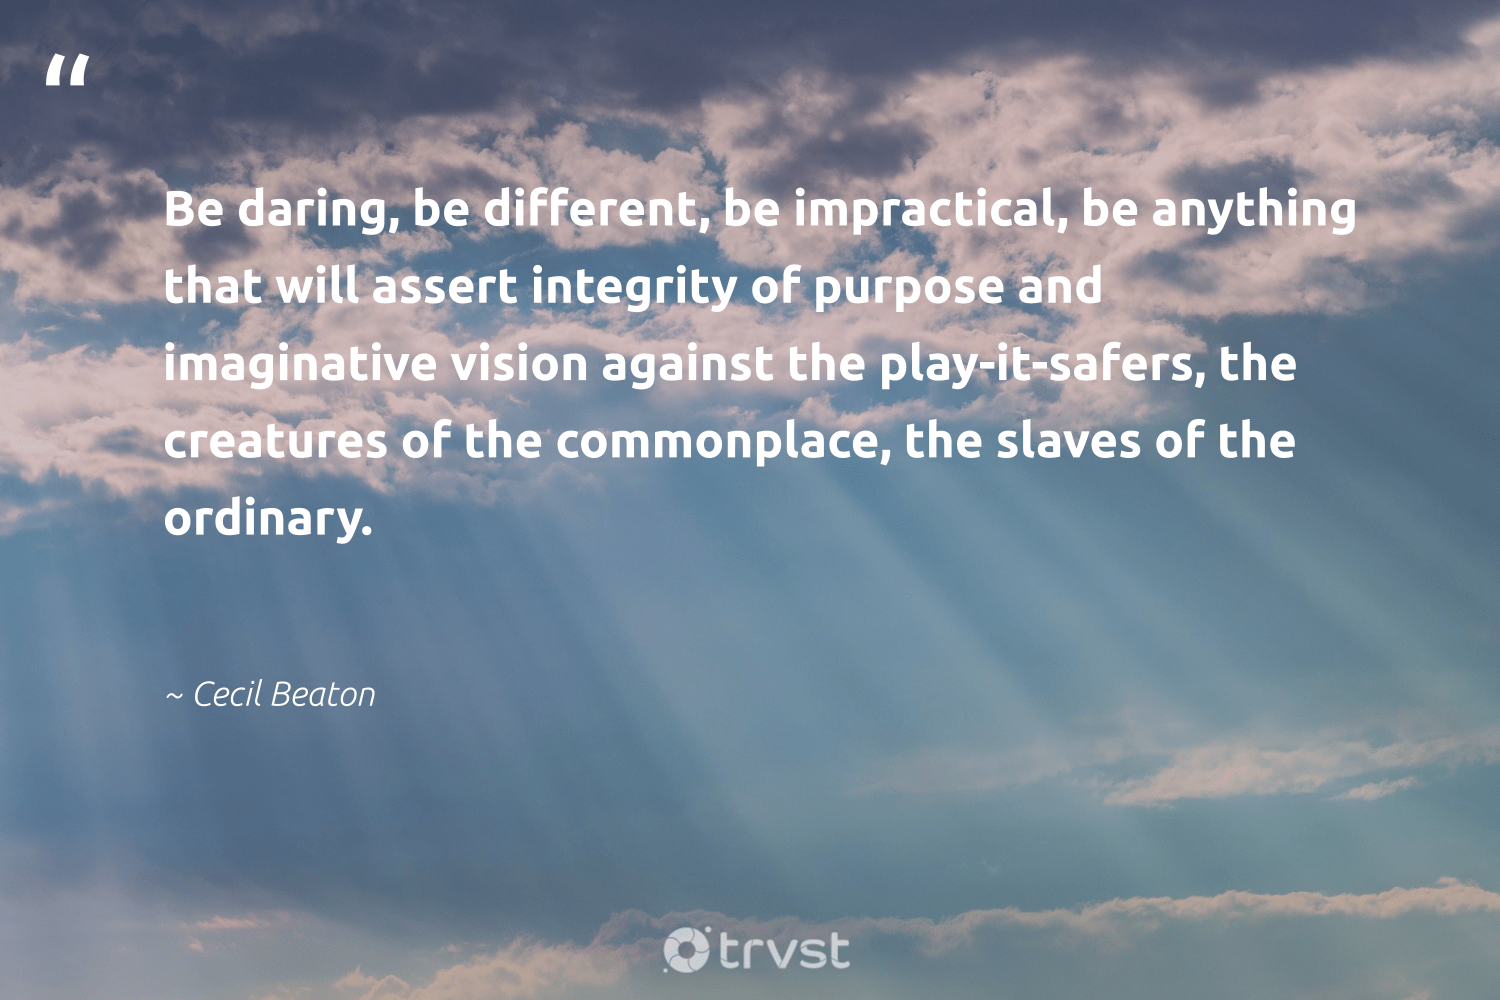 """""""Be daring, be different, be impractical, be anything that will assert integrity of purpose and imaginative vision against the play-it-safers, the creatures of the commonplace, the slaves of the ordinary.""""  - Cecil Beaton #trvst #quotes #purpose #findingpupose #nevergiveup #health #collectiveaction #purposedriven #togetherwecan #changemakers #socialchange #findpurpose"""